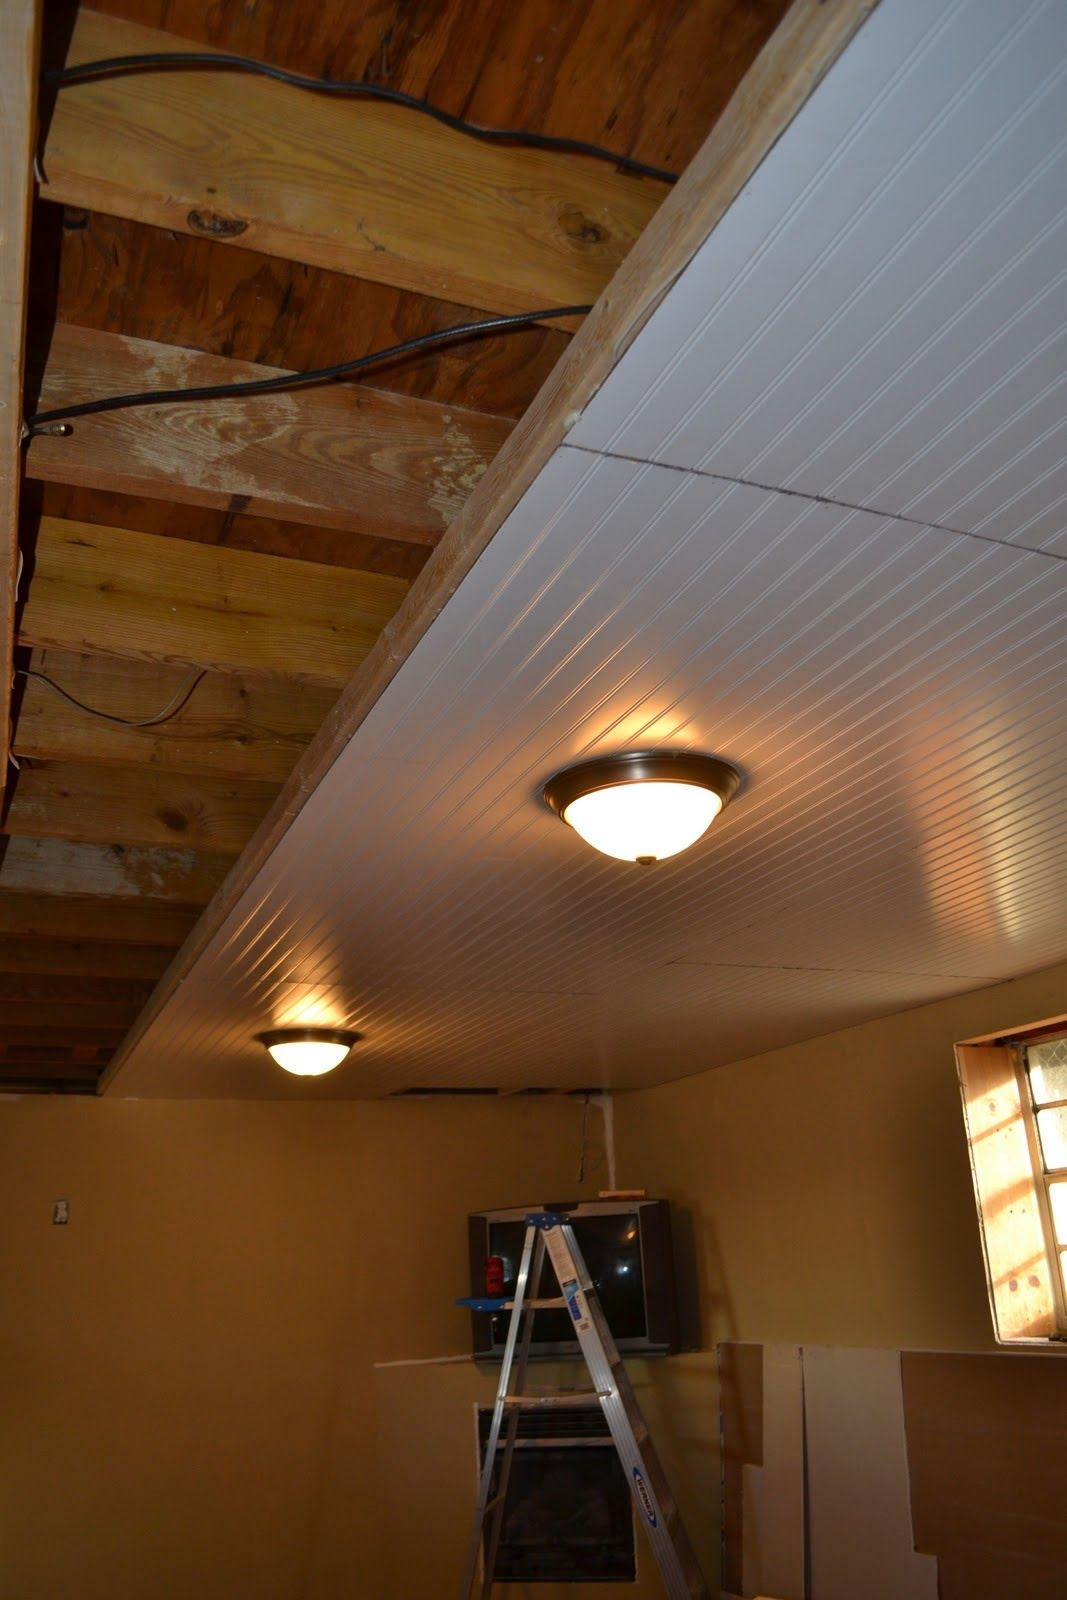 Basement Ceiling Installation Looks So Much Better Than The Typical Ceiling Rules Basement Makeover Basement Remodel Diy Basement Remodeling